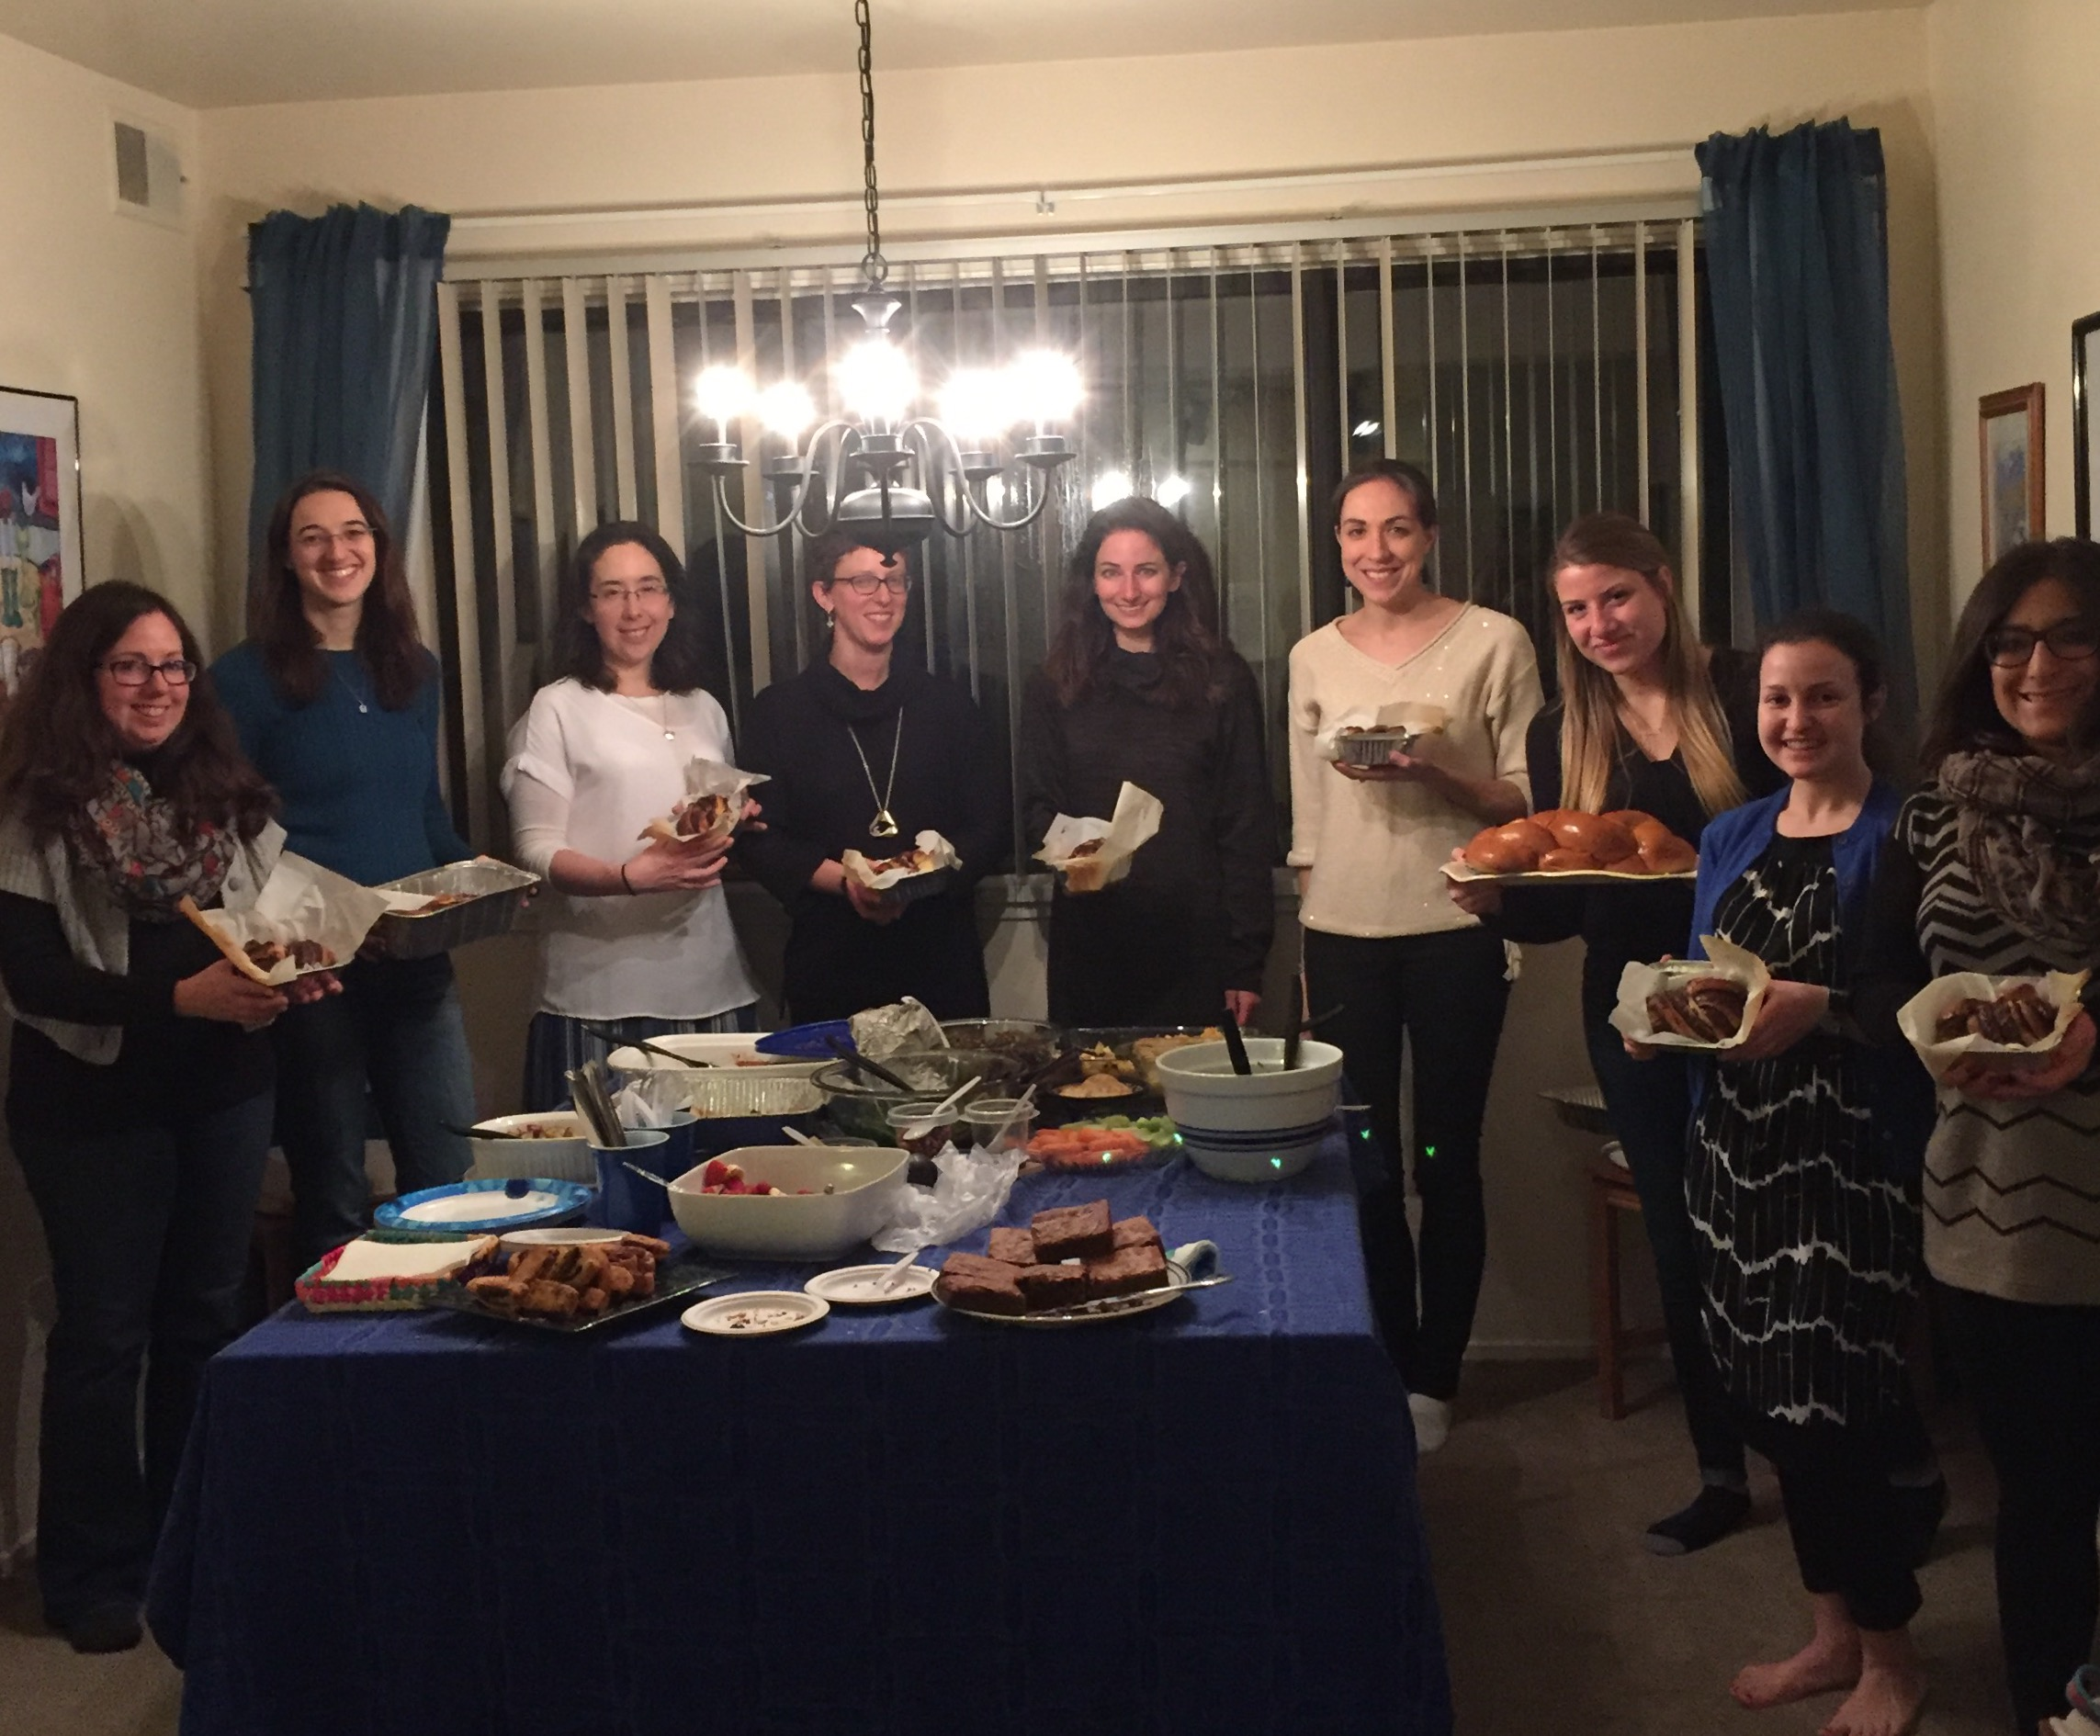 ann arbor jewish singles A2 social (formerly ann arbor entertainment) is for singles primarily in their mid-30s to mid-50s who enjoy a wide variety of entertainment, social activities and outdoor adventures the majority of o.